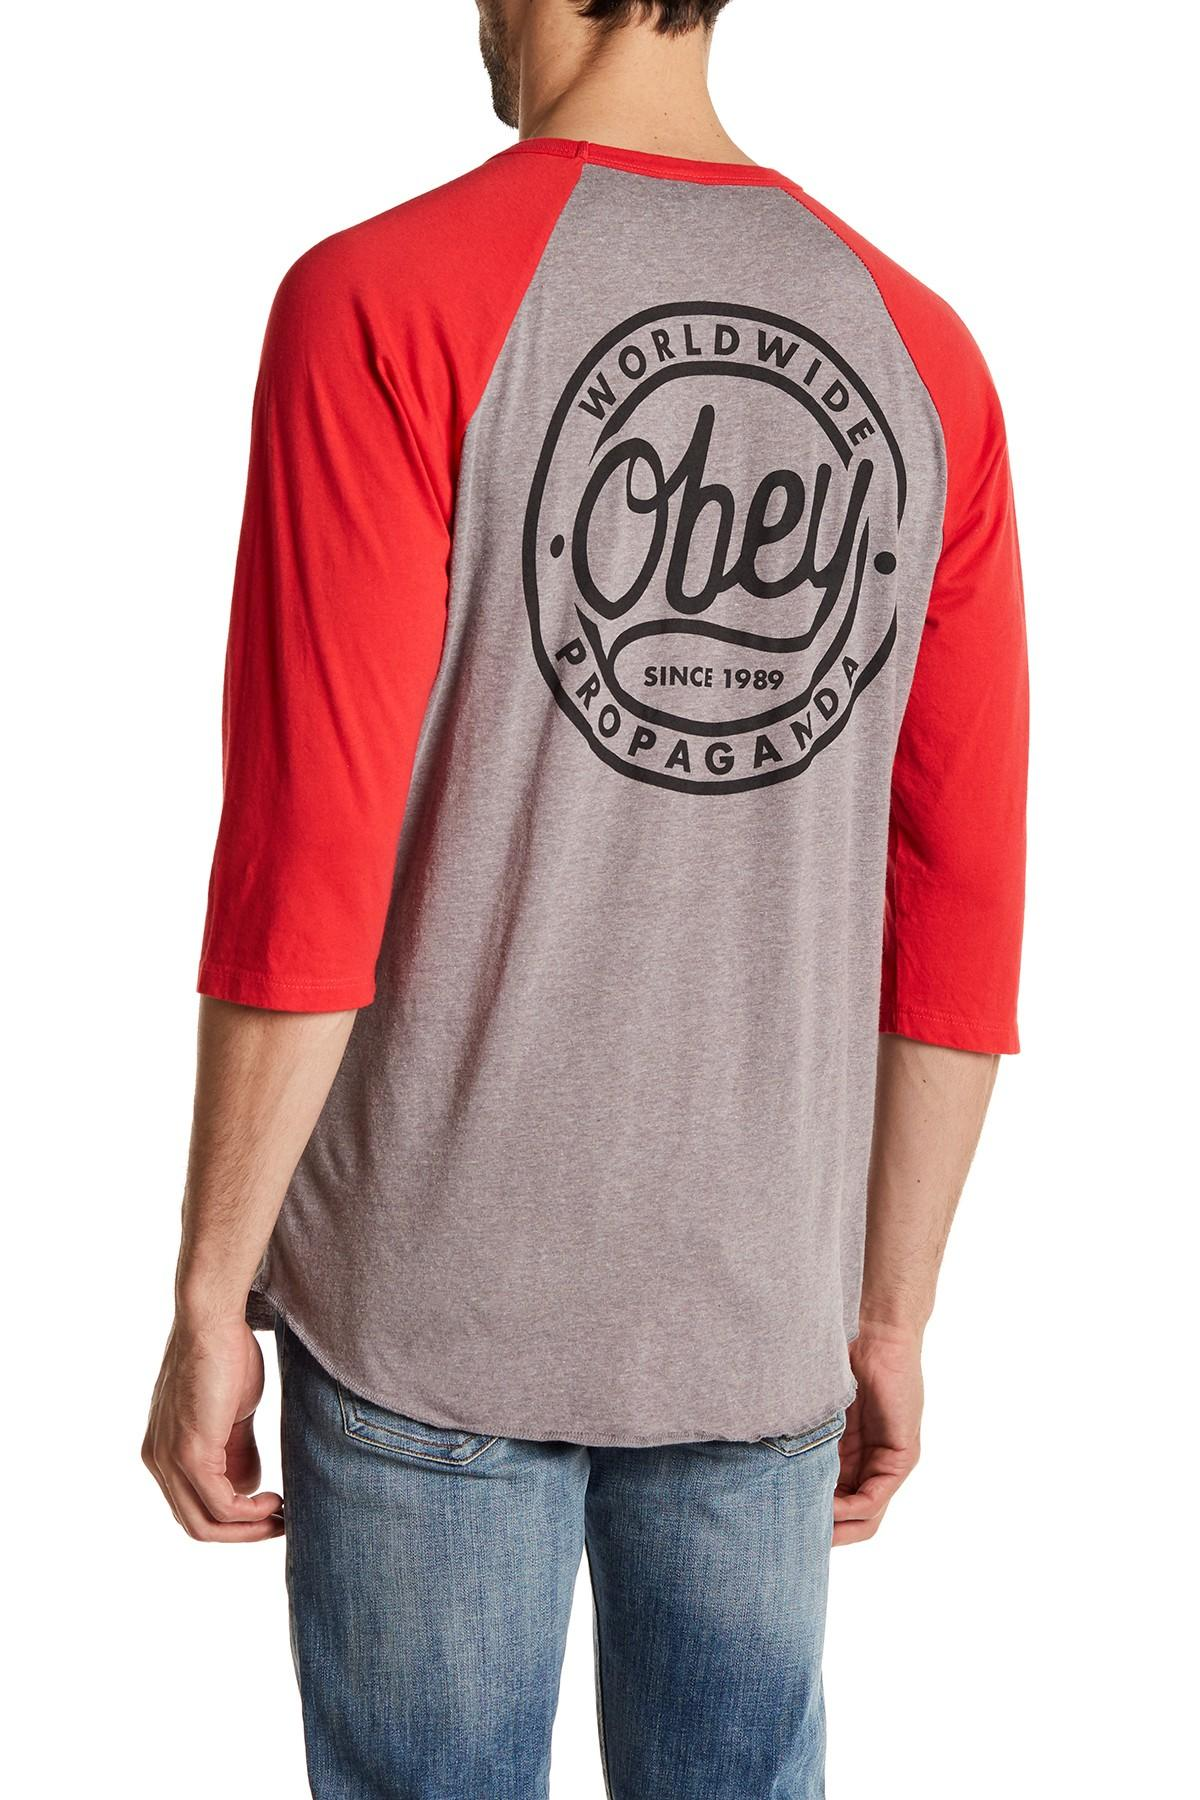 Lyst - Obey Since 1989 Baseball Tee in Red for Men